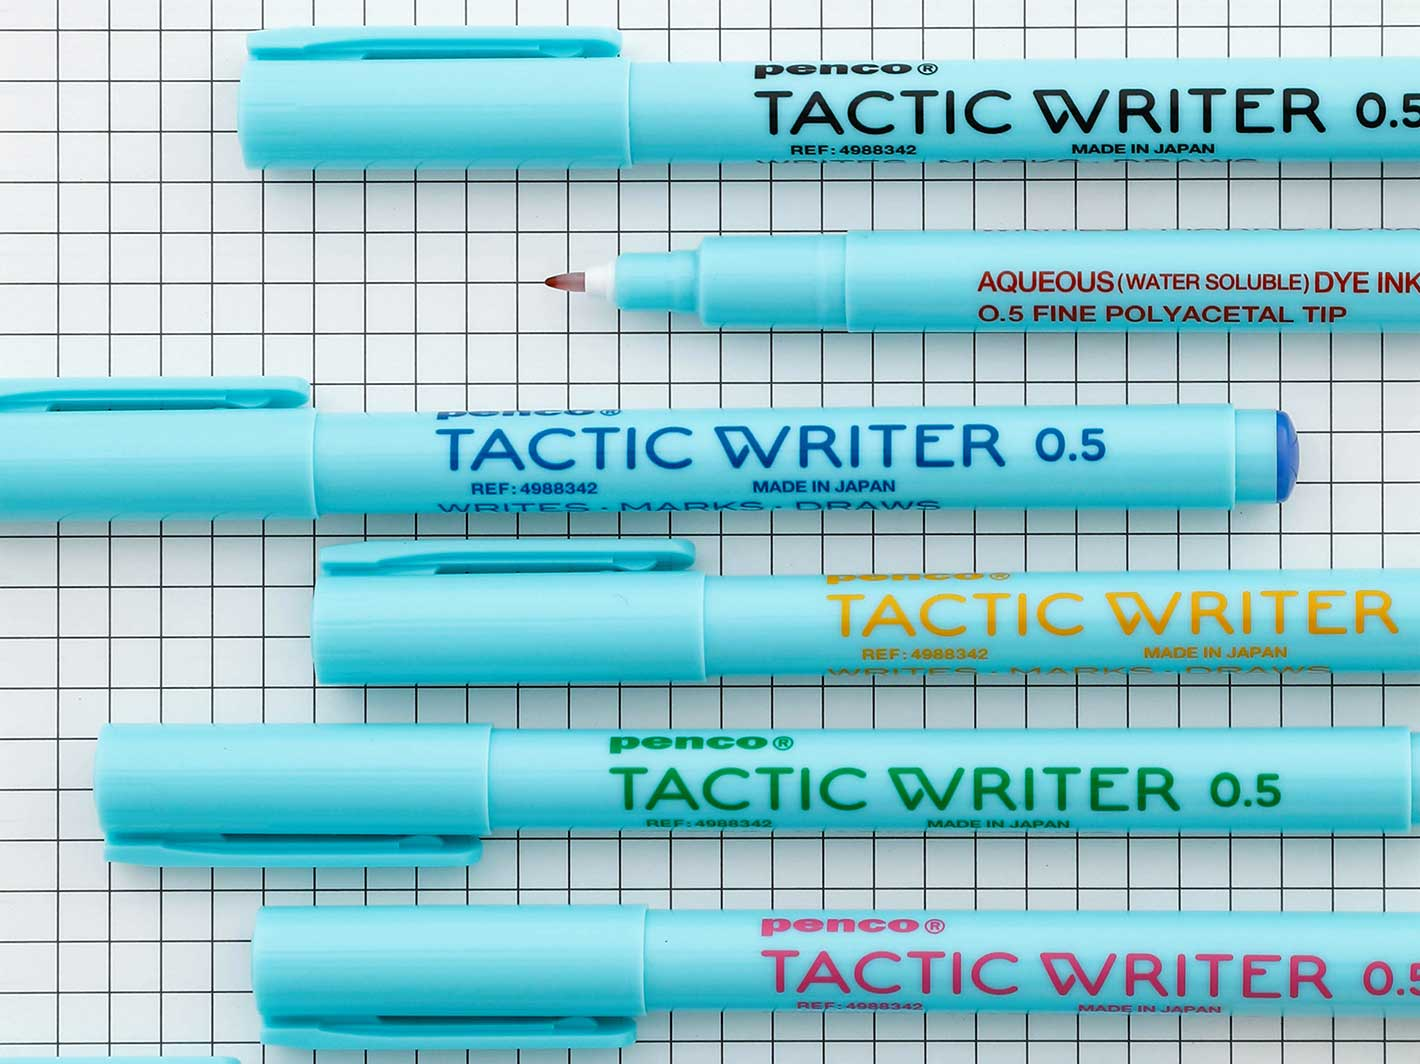 Tactic Writer 0.5 Blue